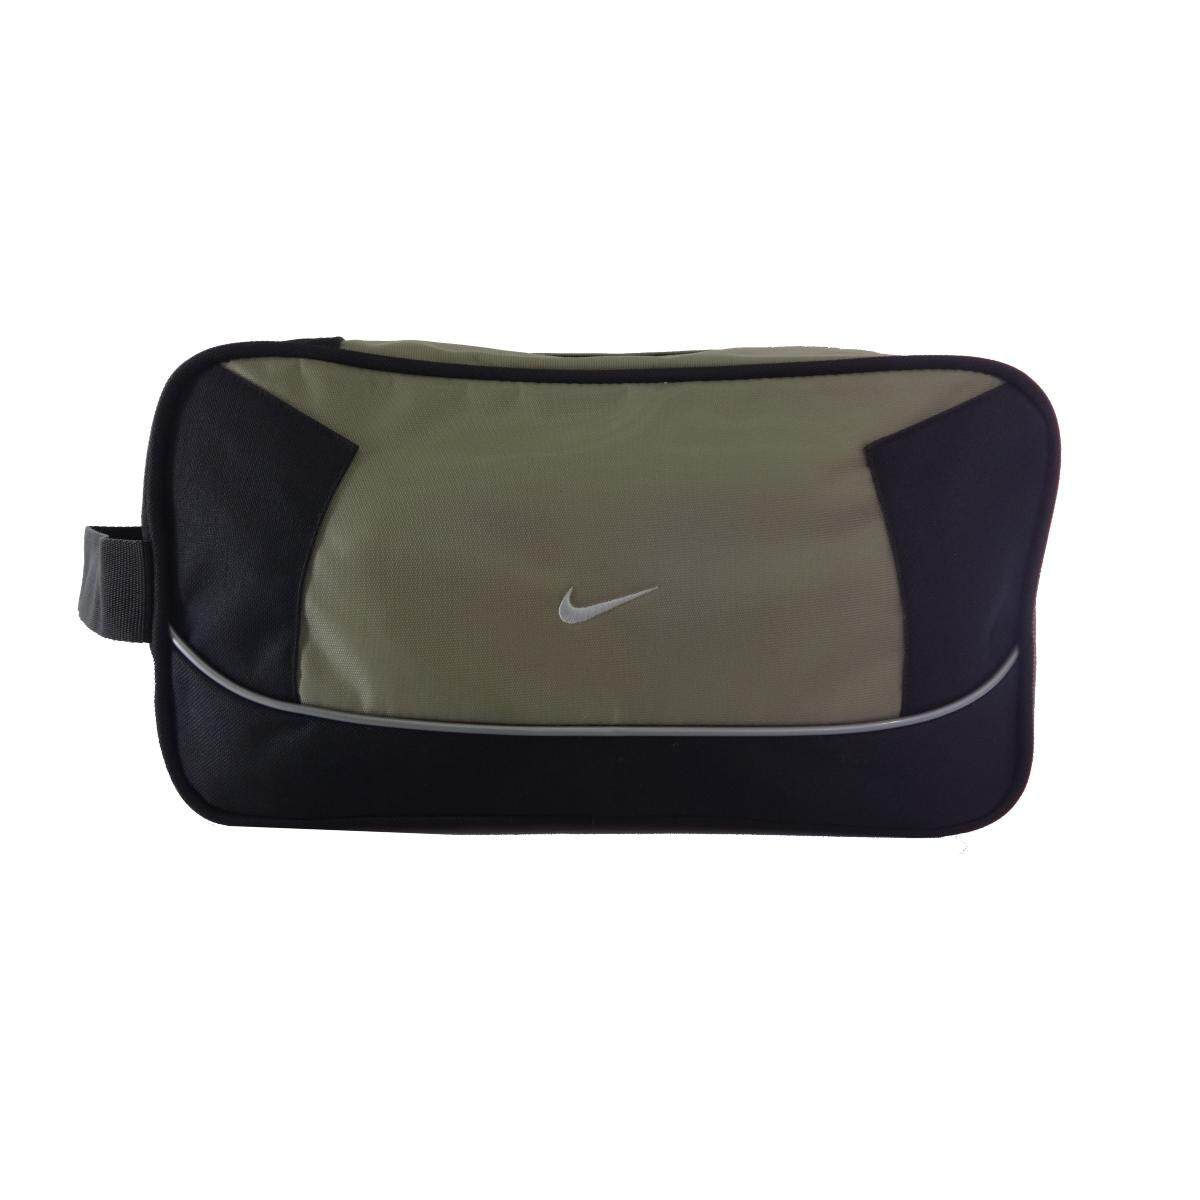 Nike Products Accessories At Best Price In Malaysia Lazada Dompet Wanita Rc550 Shoe Bag 590969